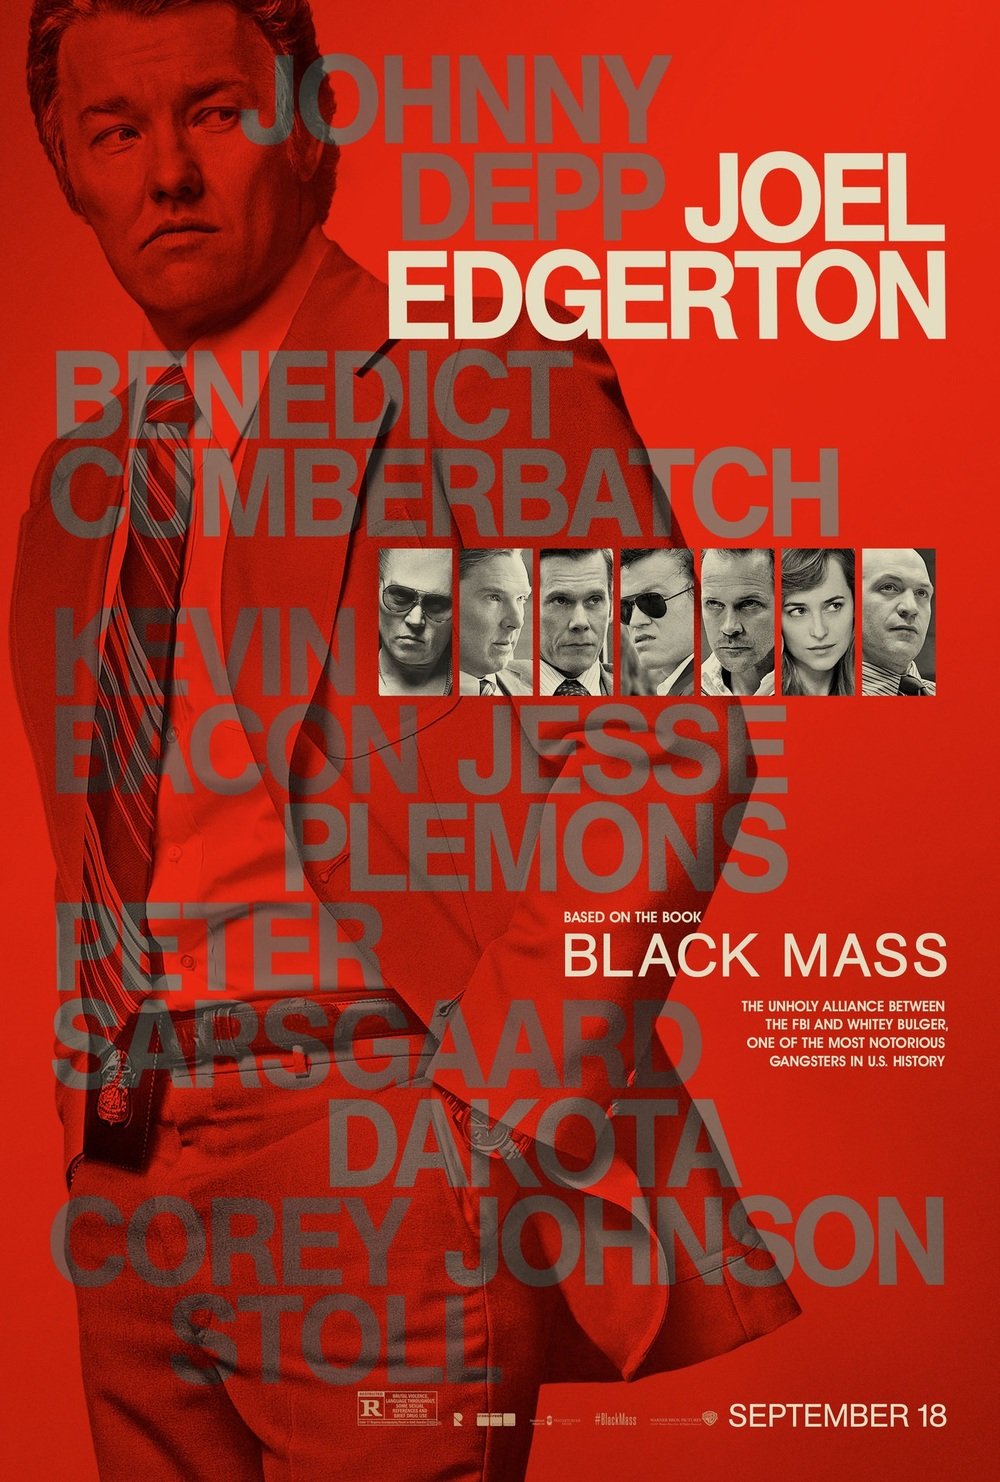 Black mass poster 8 Joel Edgerton